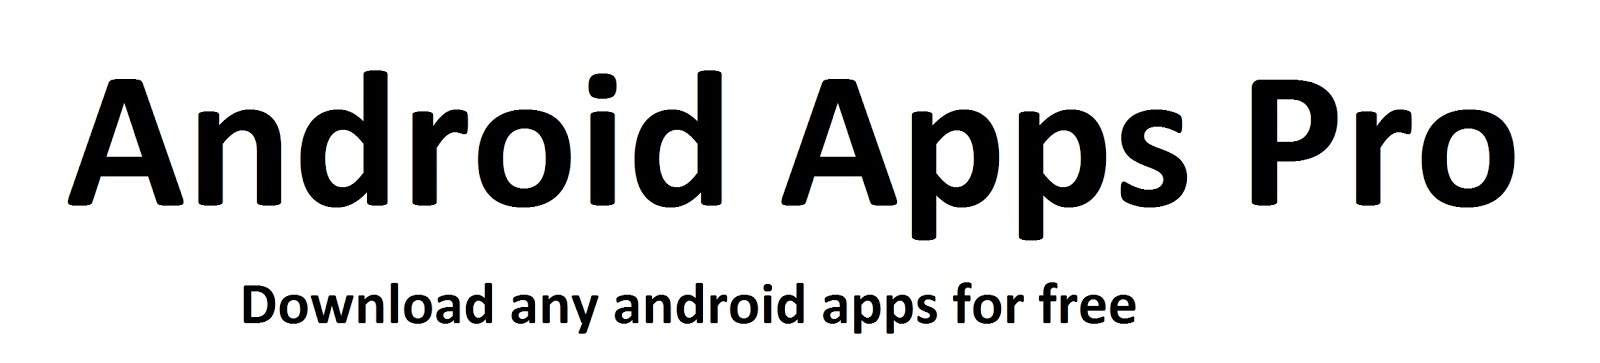 Android Apps Pro